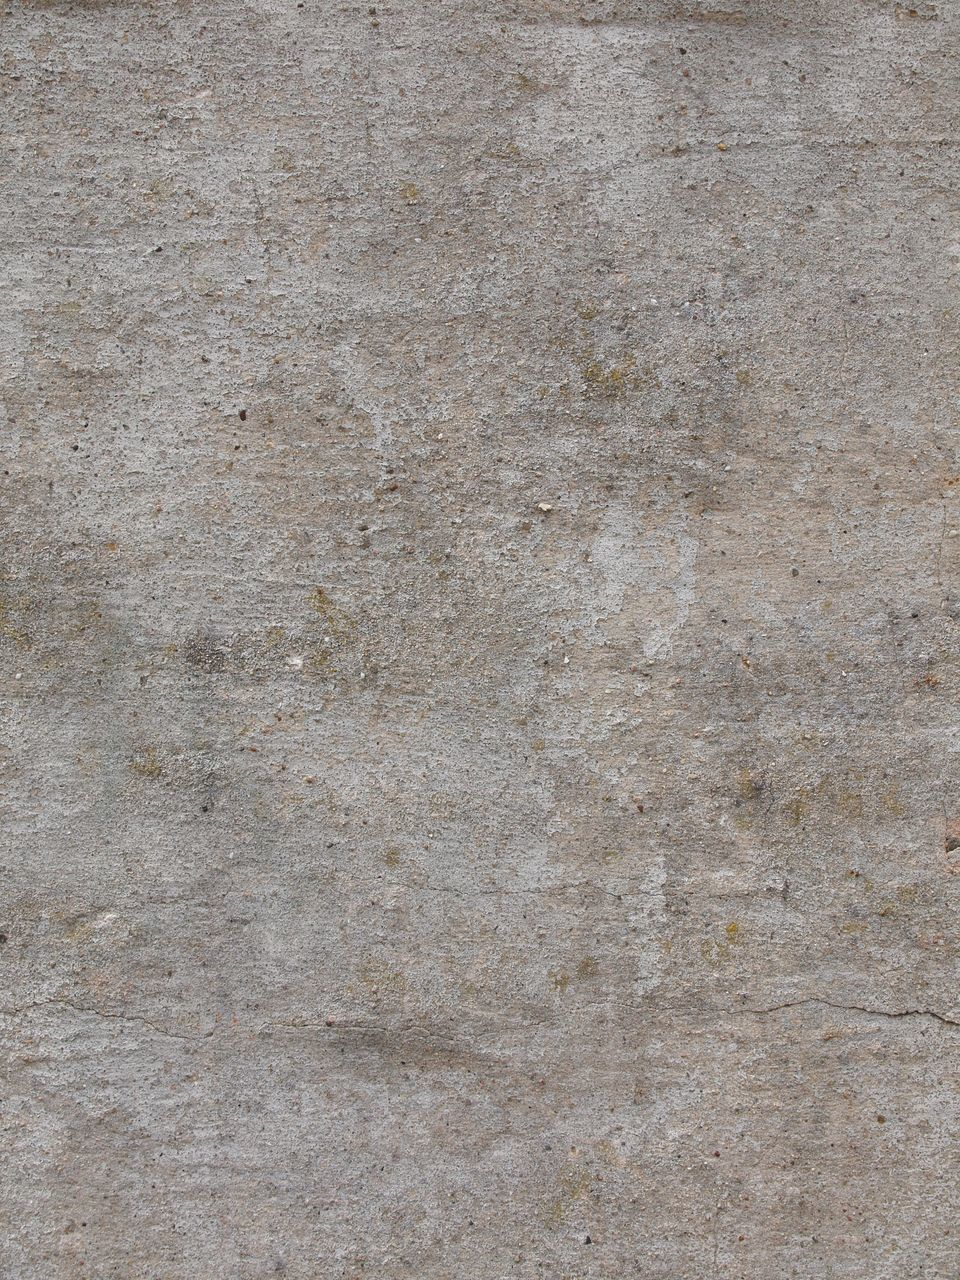 textured, material, backgrounds, gray, abstract, pattern, stone material, rough, colored background, full frame, brown, paper, fiber, no people, painted image, close-up